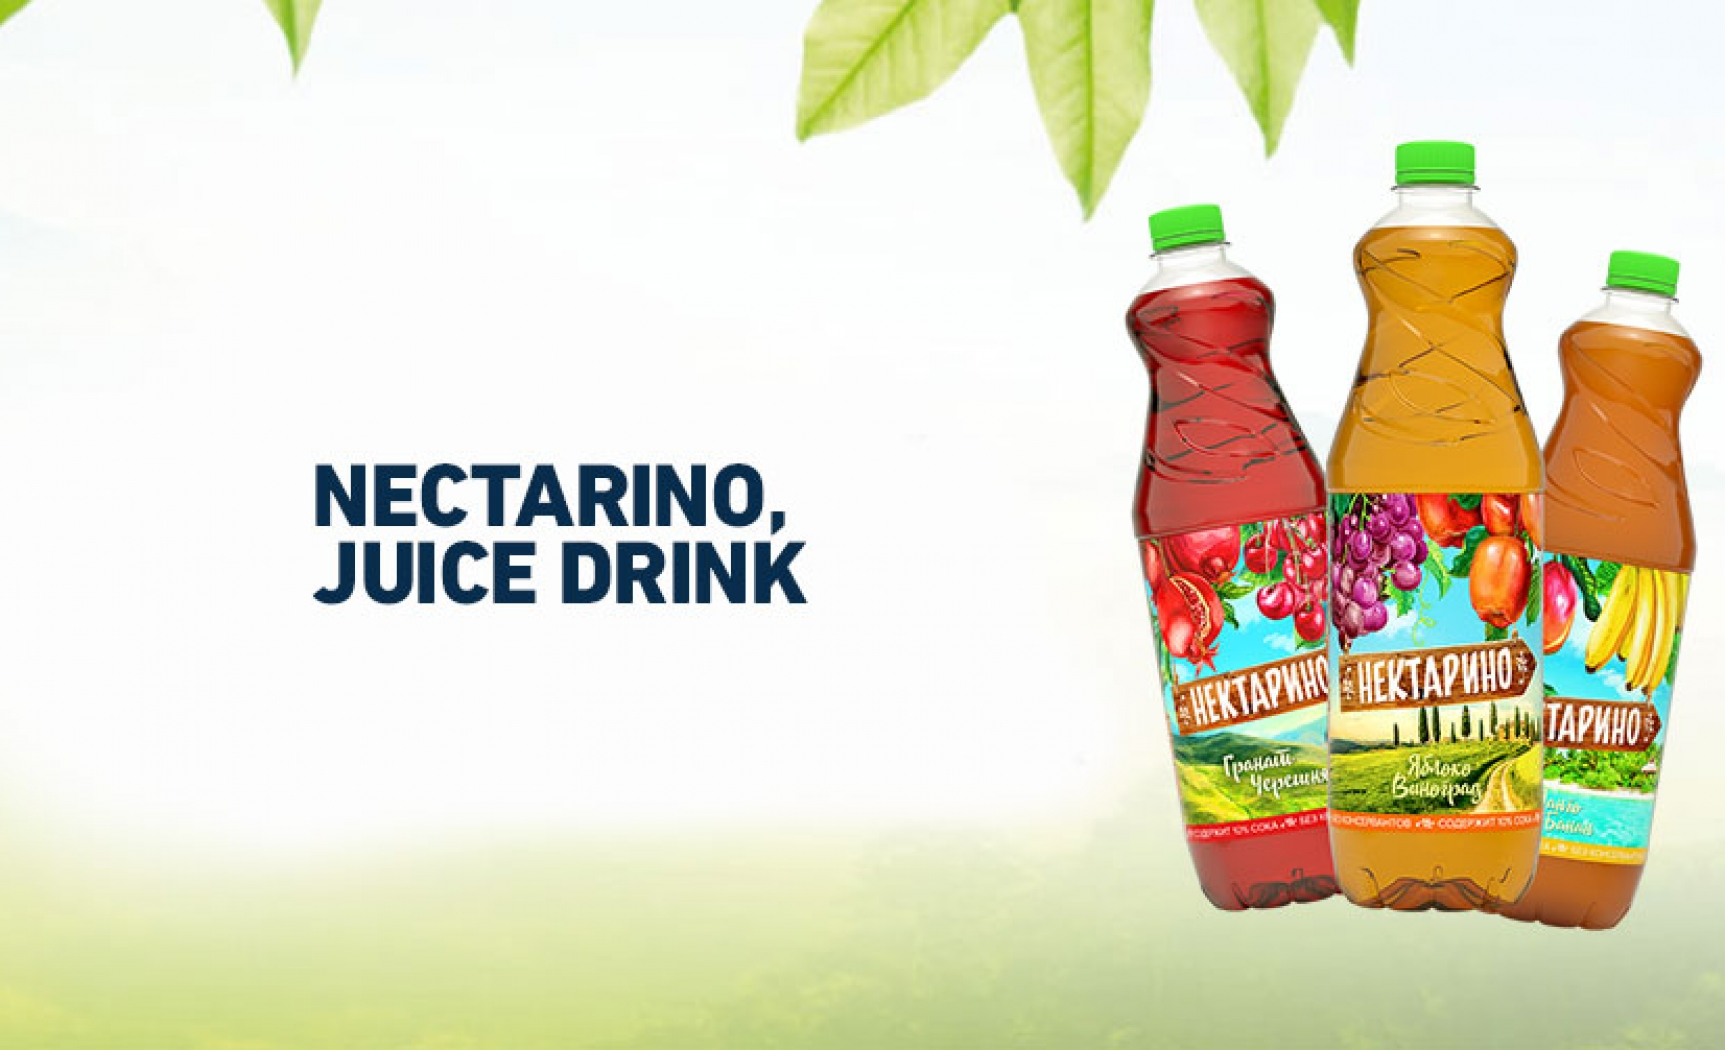 Nectarino, Juice Drink